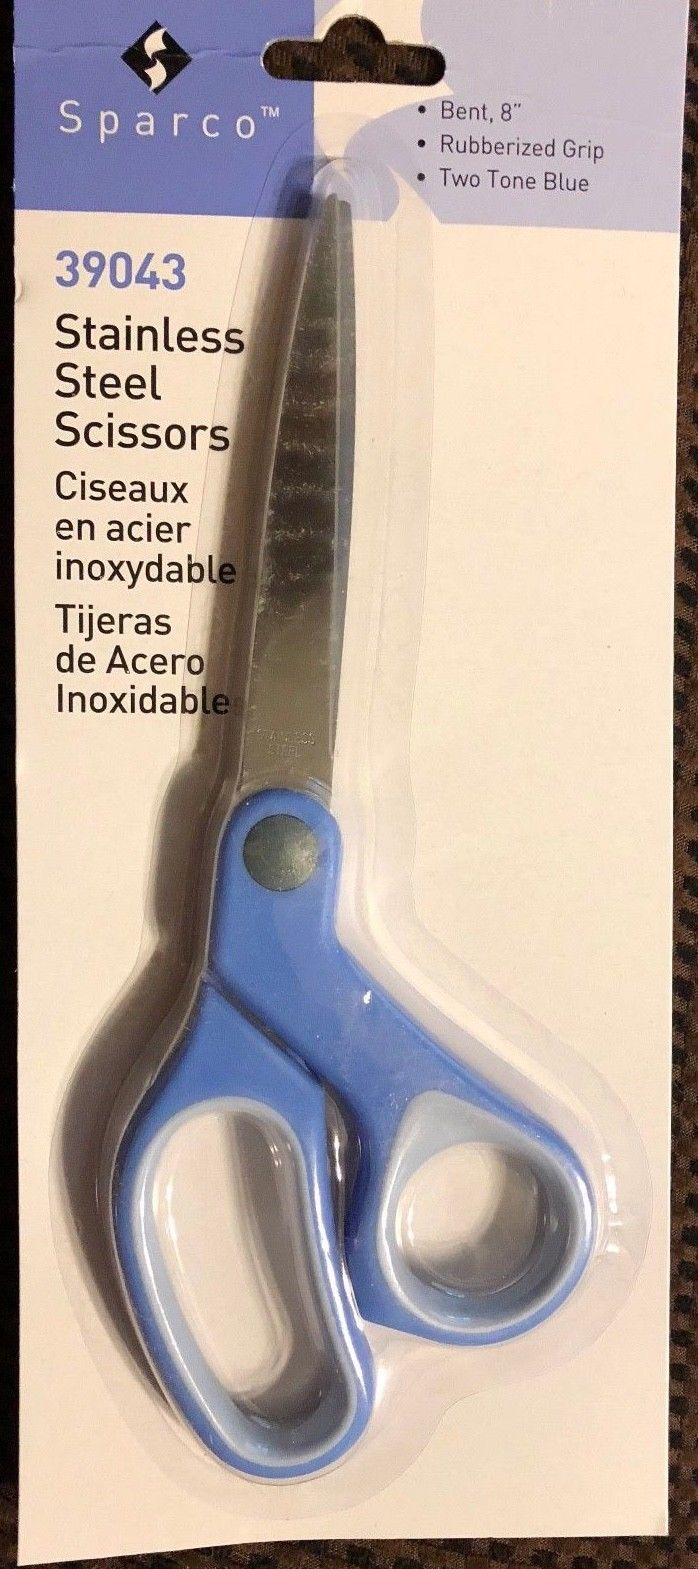 Sparco 8-Inch Bent Multipurpose Scissors, Stainless Steel, Blue (SPR39043)